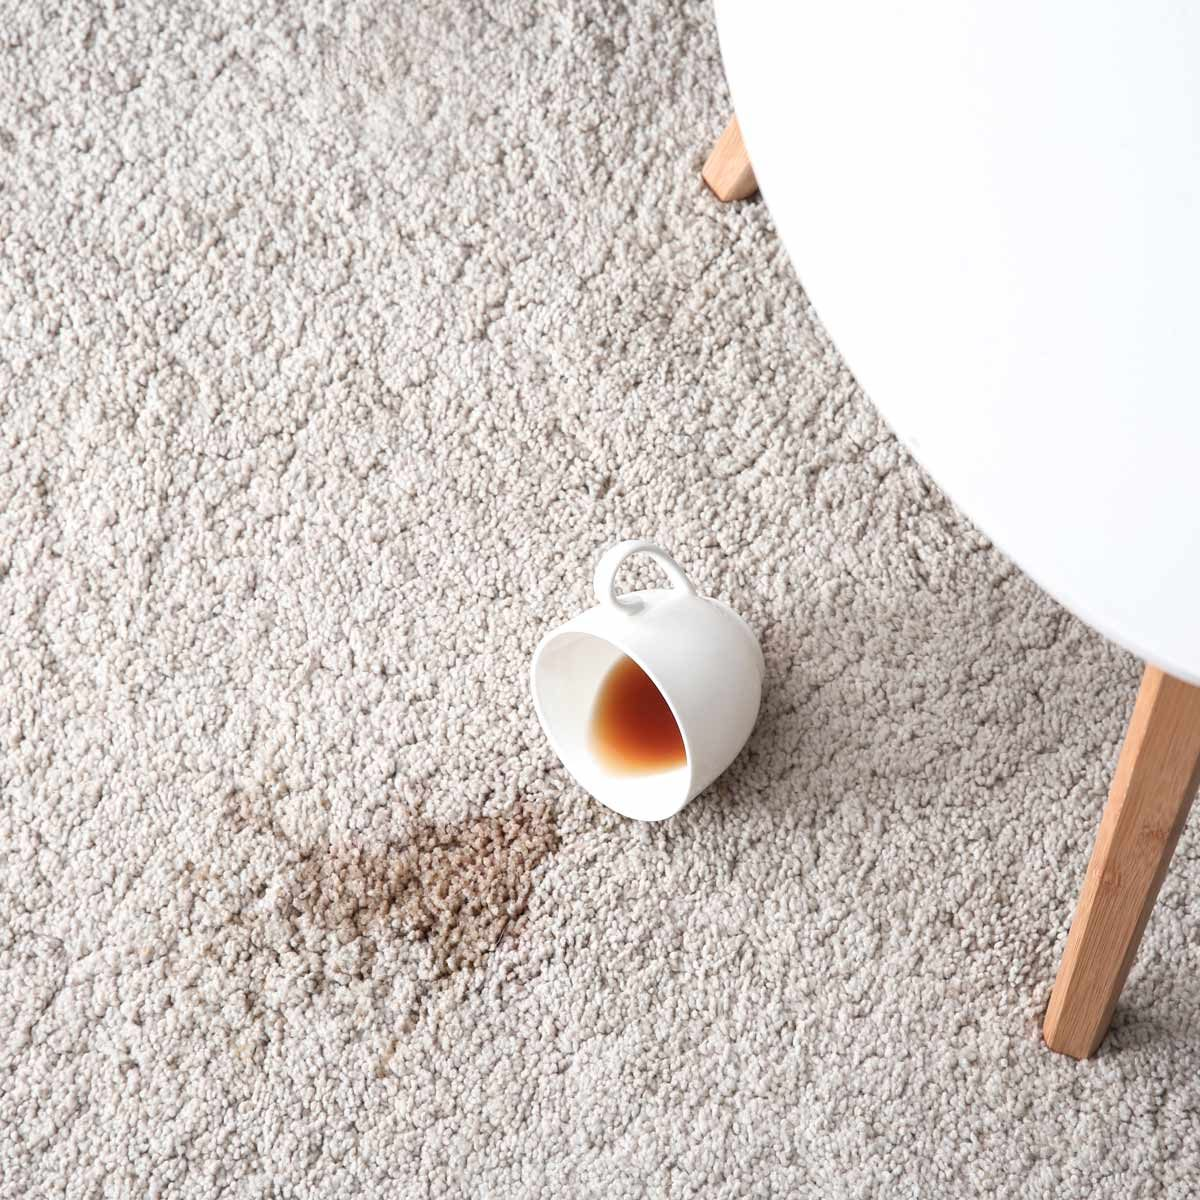 How To Remove Coffee Stains Family Handyman